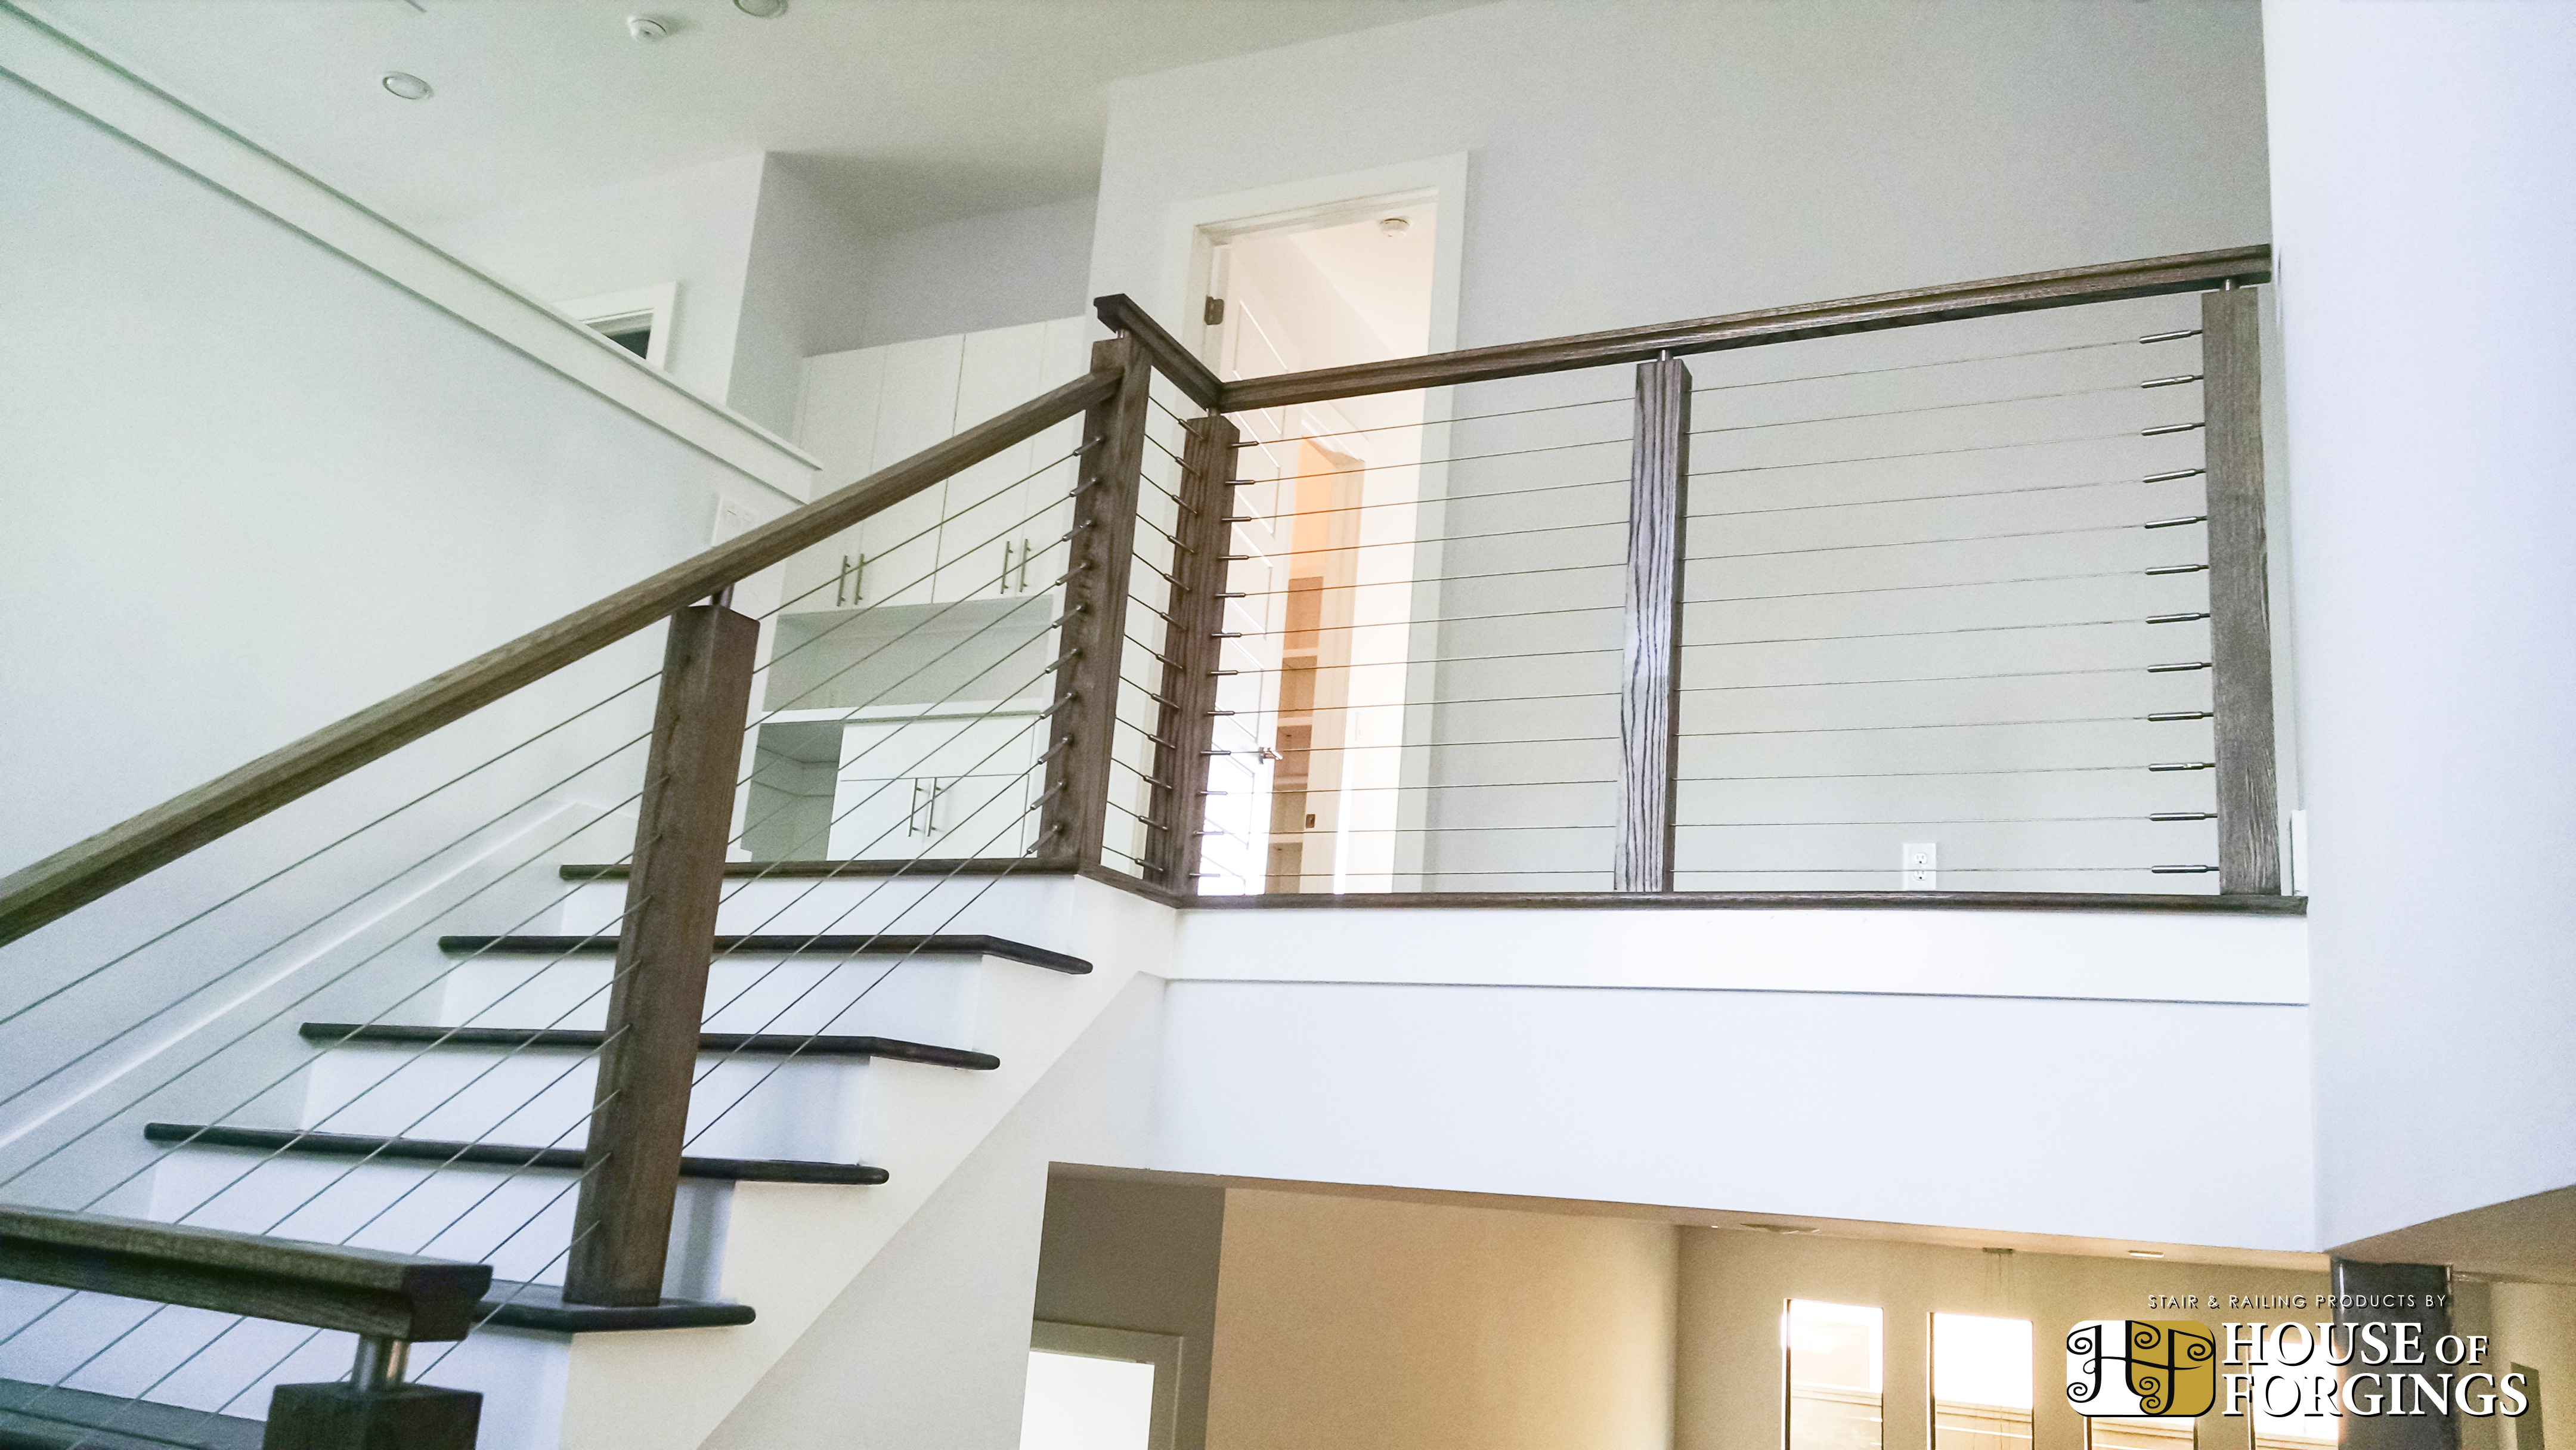 Cable Railing Systems for Stairs & Balconies